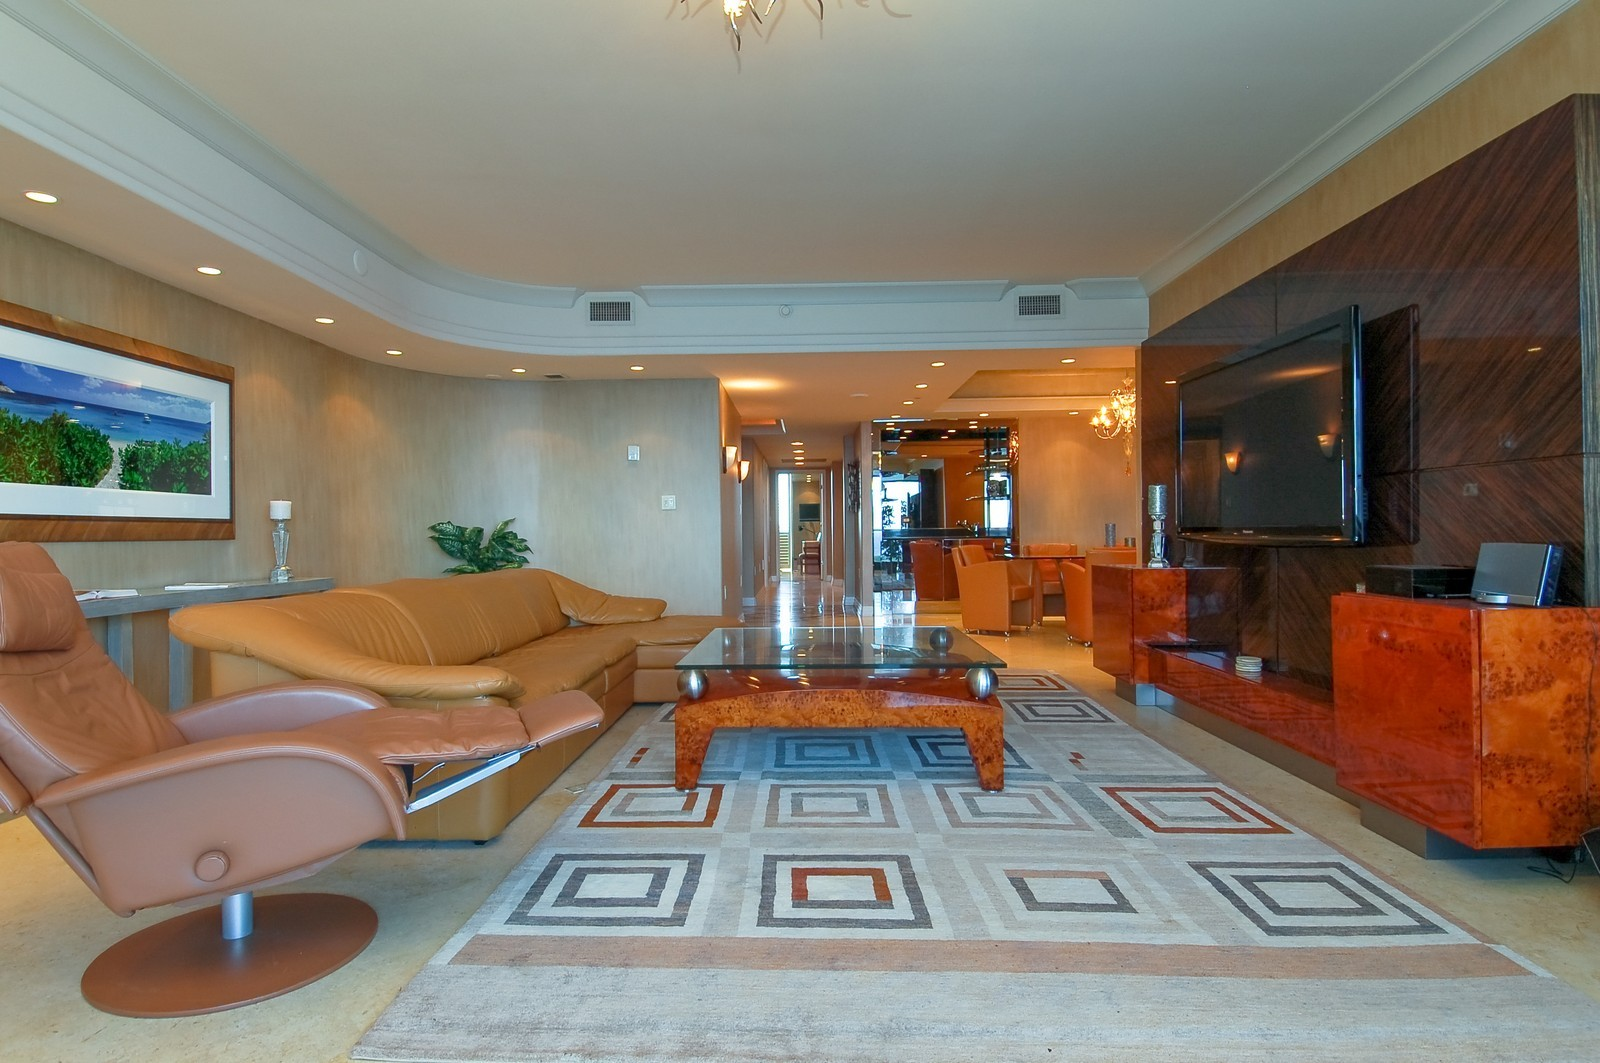 Real Estate Photography - 1600 S Ocean Blvd, Apt 802, Pompano Beach, FL, 33062 - Family Room / Kitchen